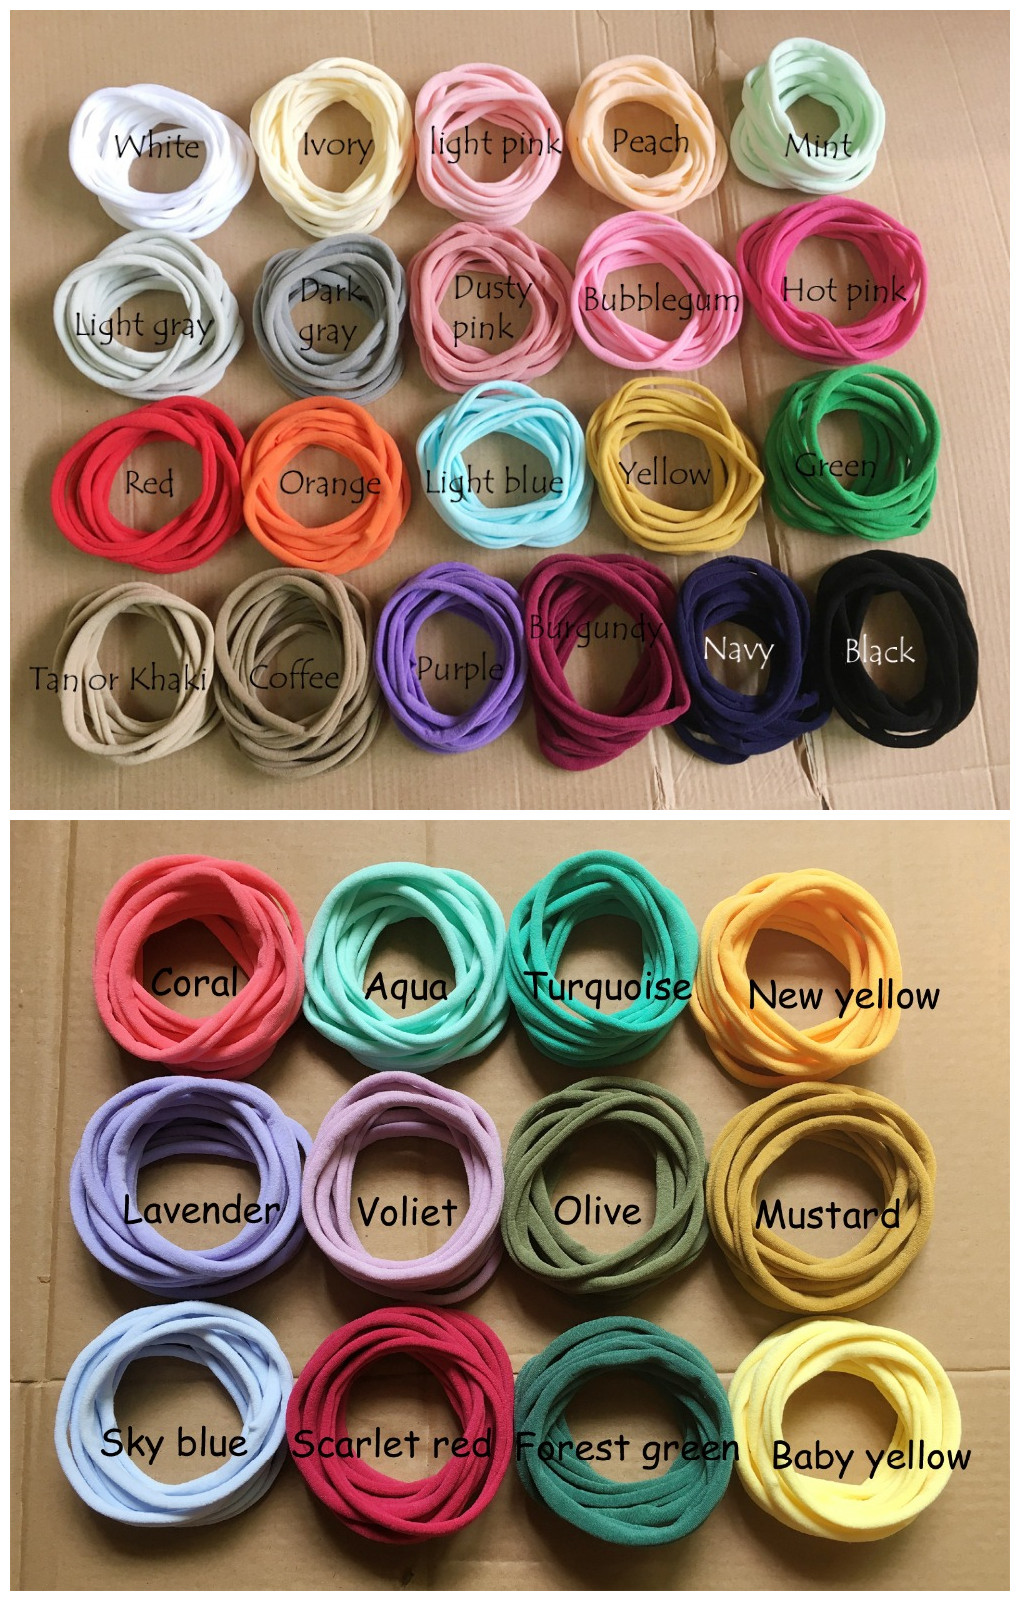 500 pcs 34 Solid Color Nylon Elastic Headbands Super Soft Stretchy Nylon Headbands one size fits most